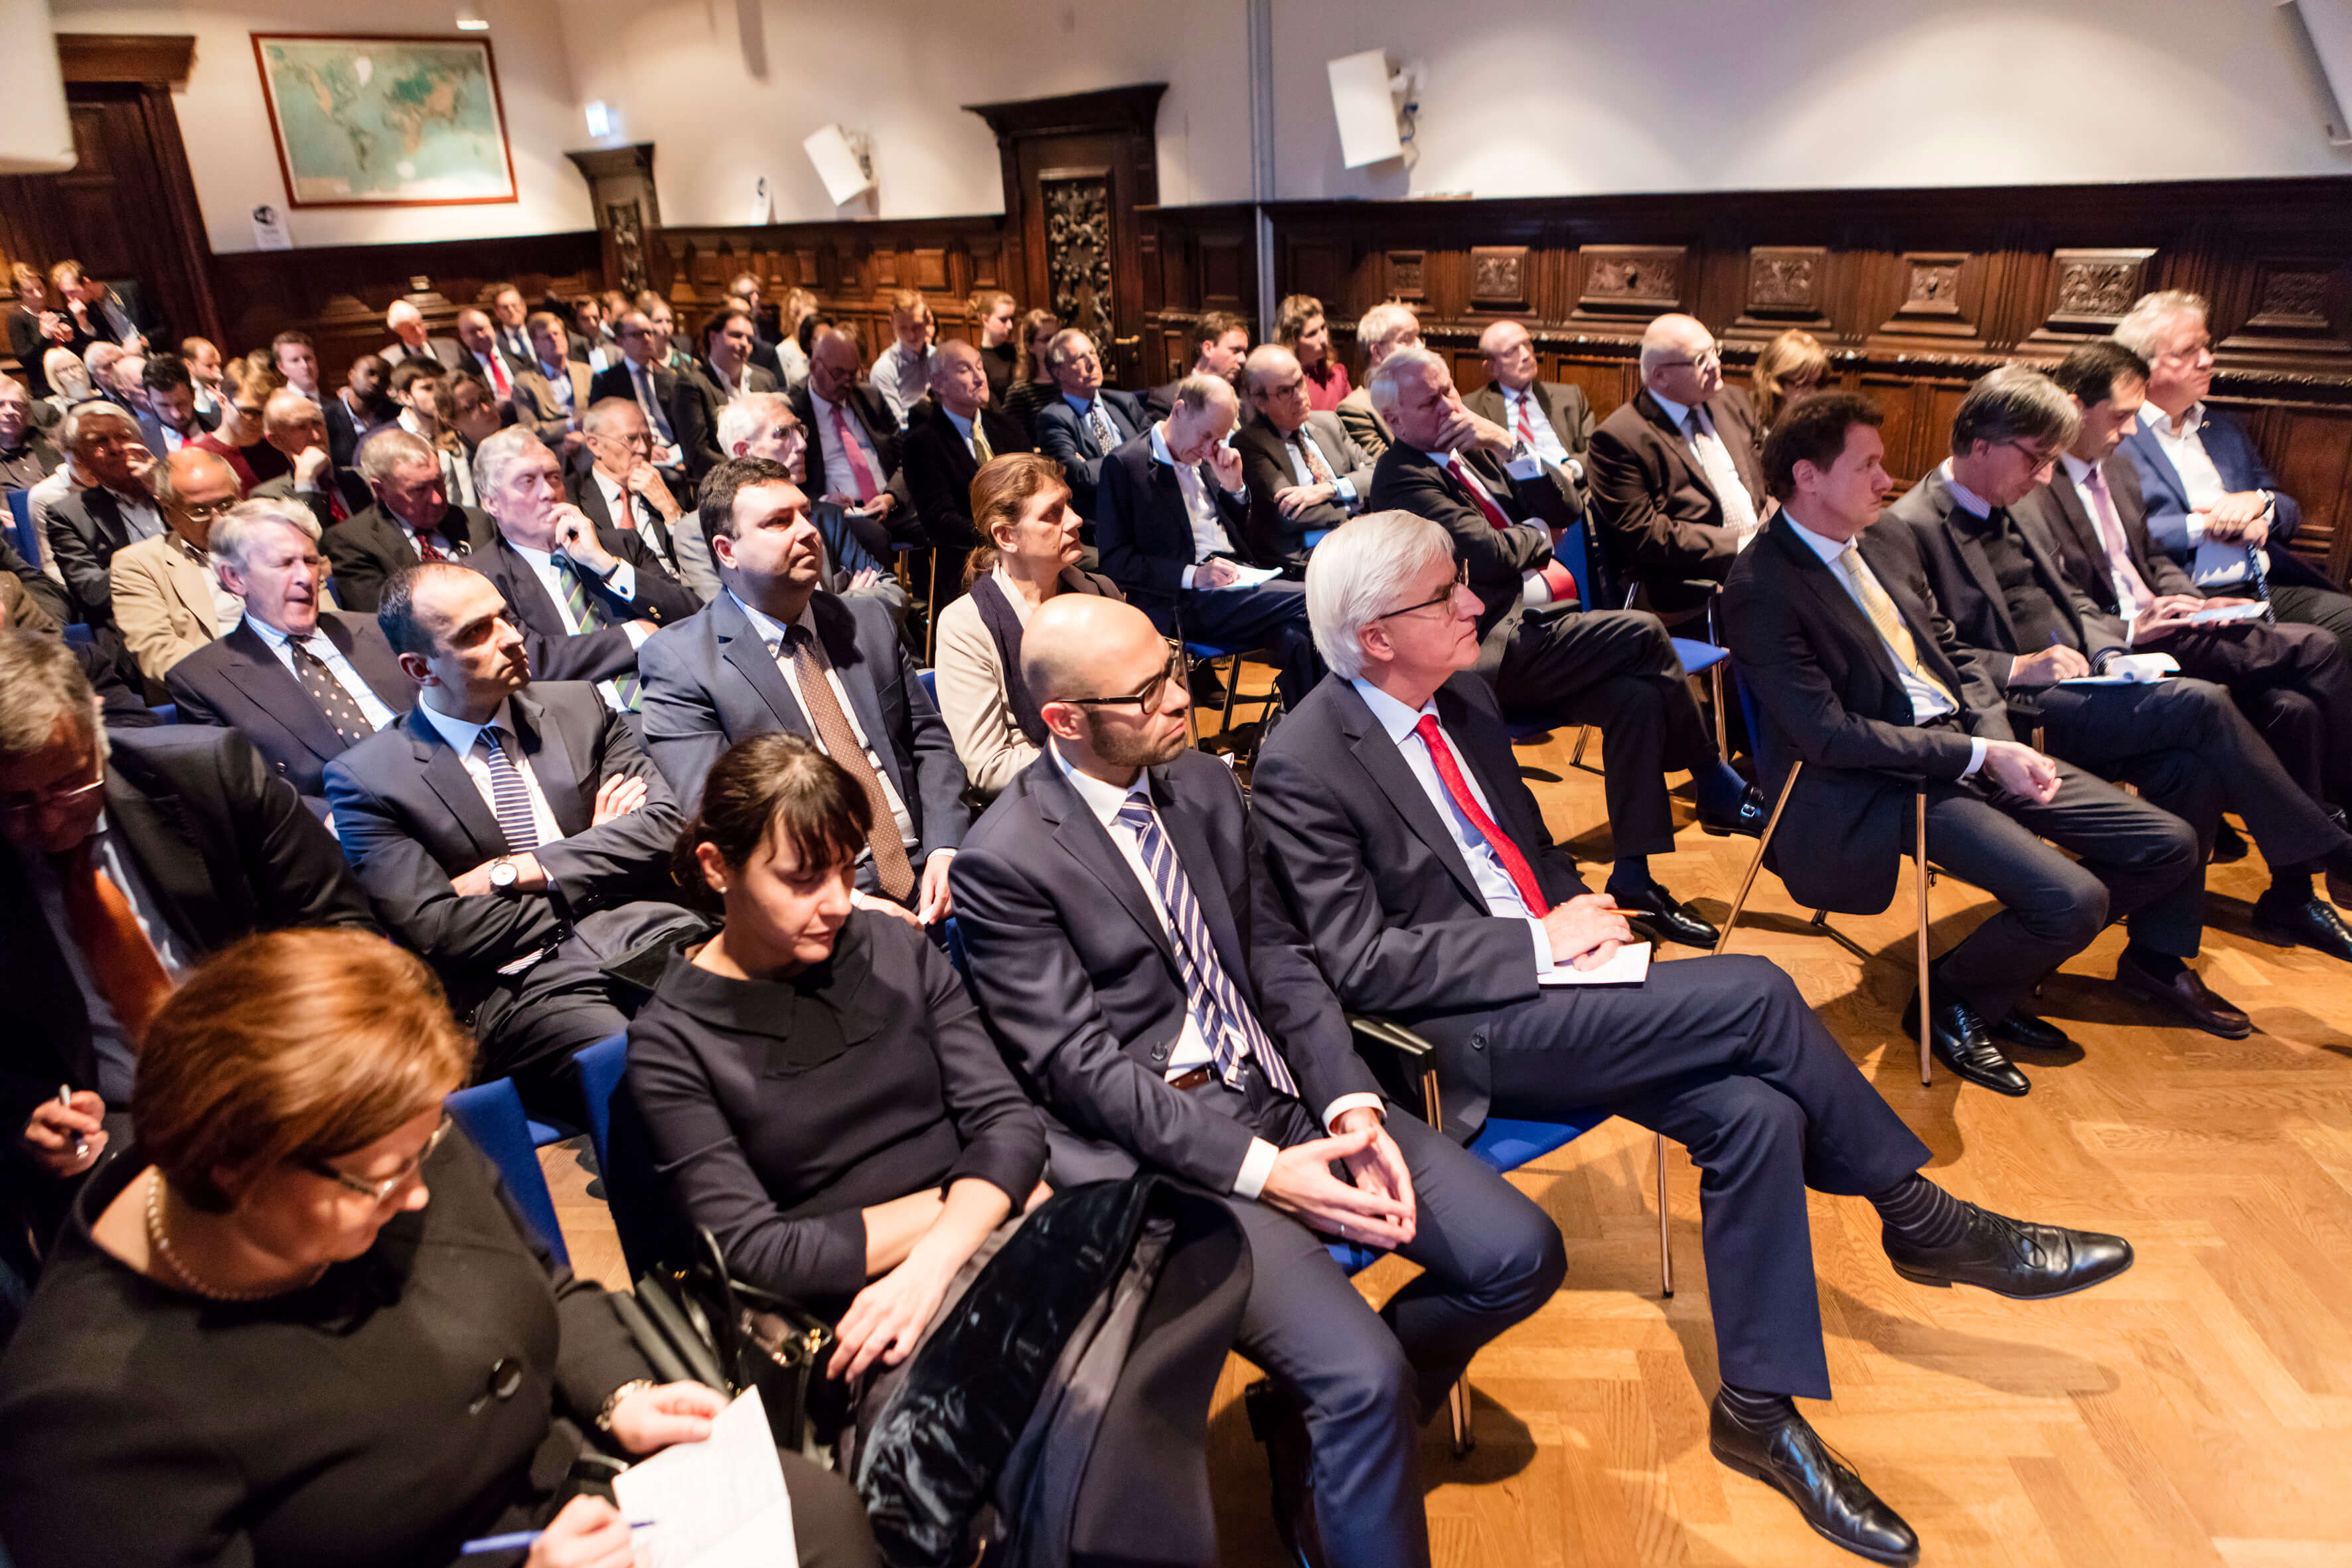 Full house during public debate with Polish FA minister Waszczykovski